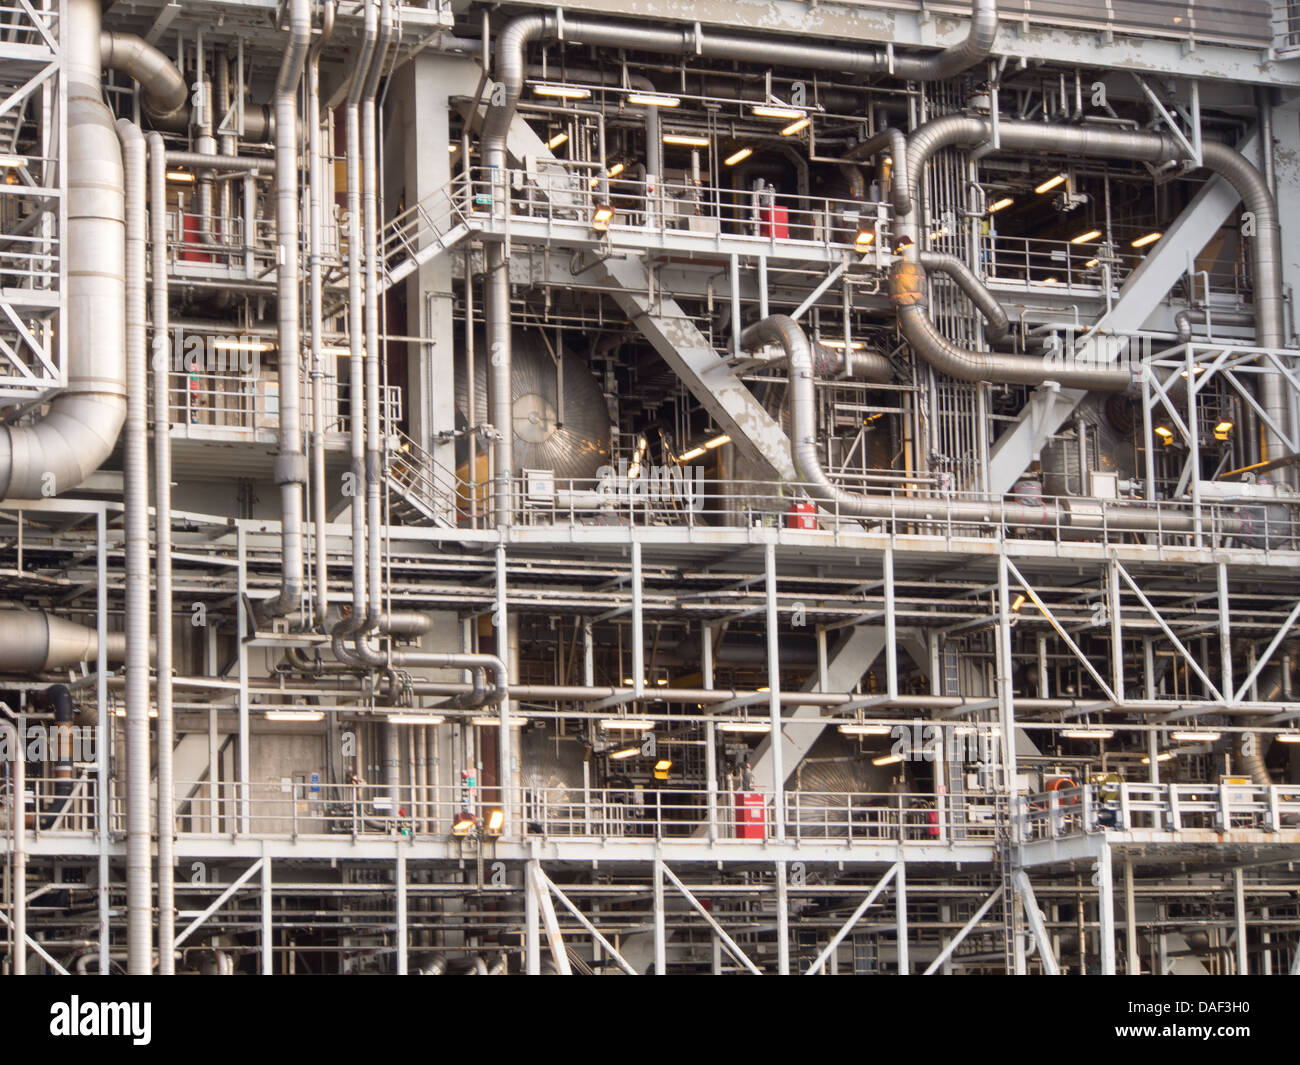 Piping and steel constructions on an offshore platform in the North Sea - Stock Image